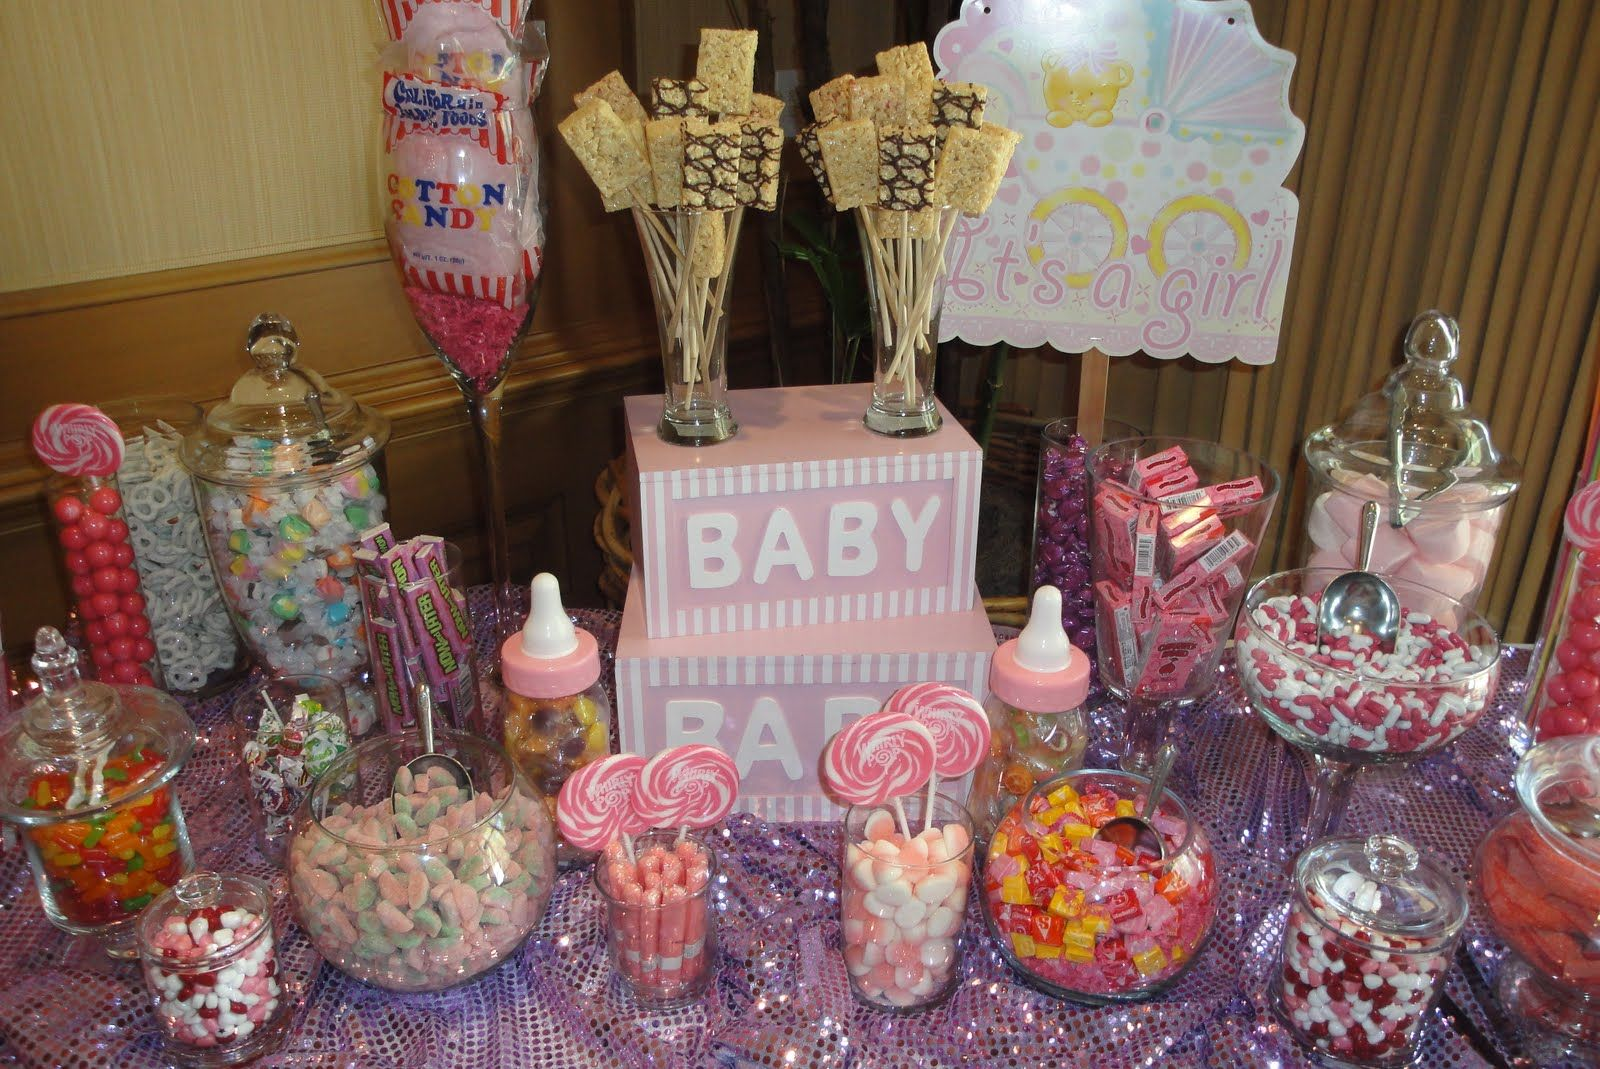 Baby Shower Candy Centerpieces | Xoxo Jackie Candy Girl The Candy Crew |  Crafts | Pinterest | Baby Shower Candy, Candy Centerpieces And Baby Shower  Brunch